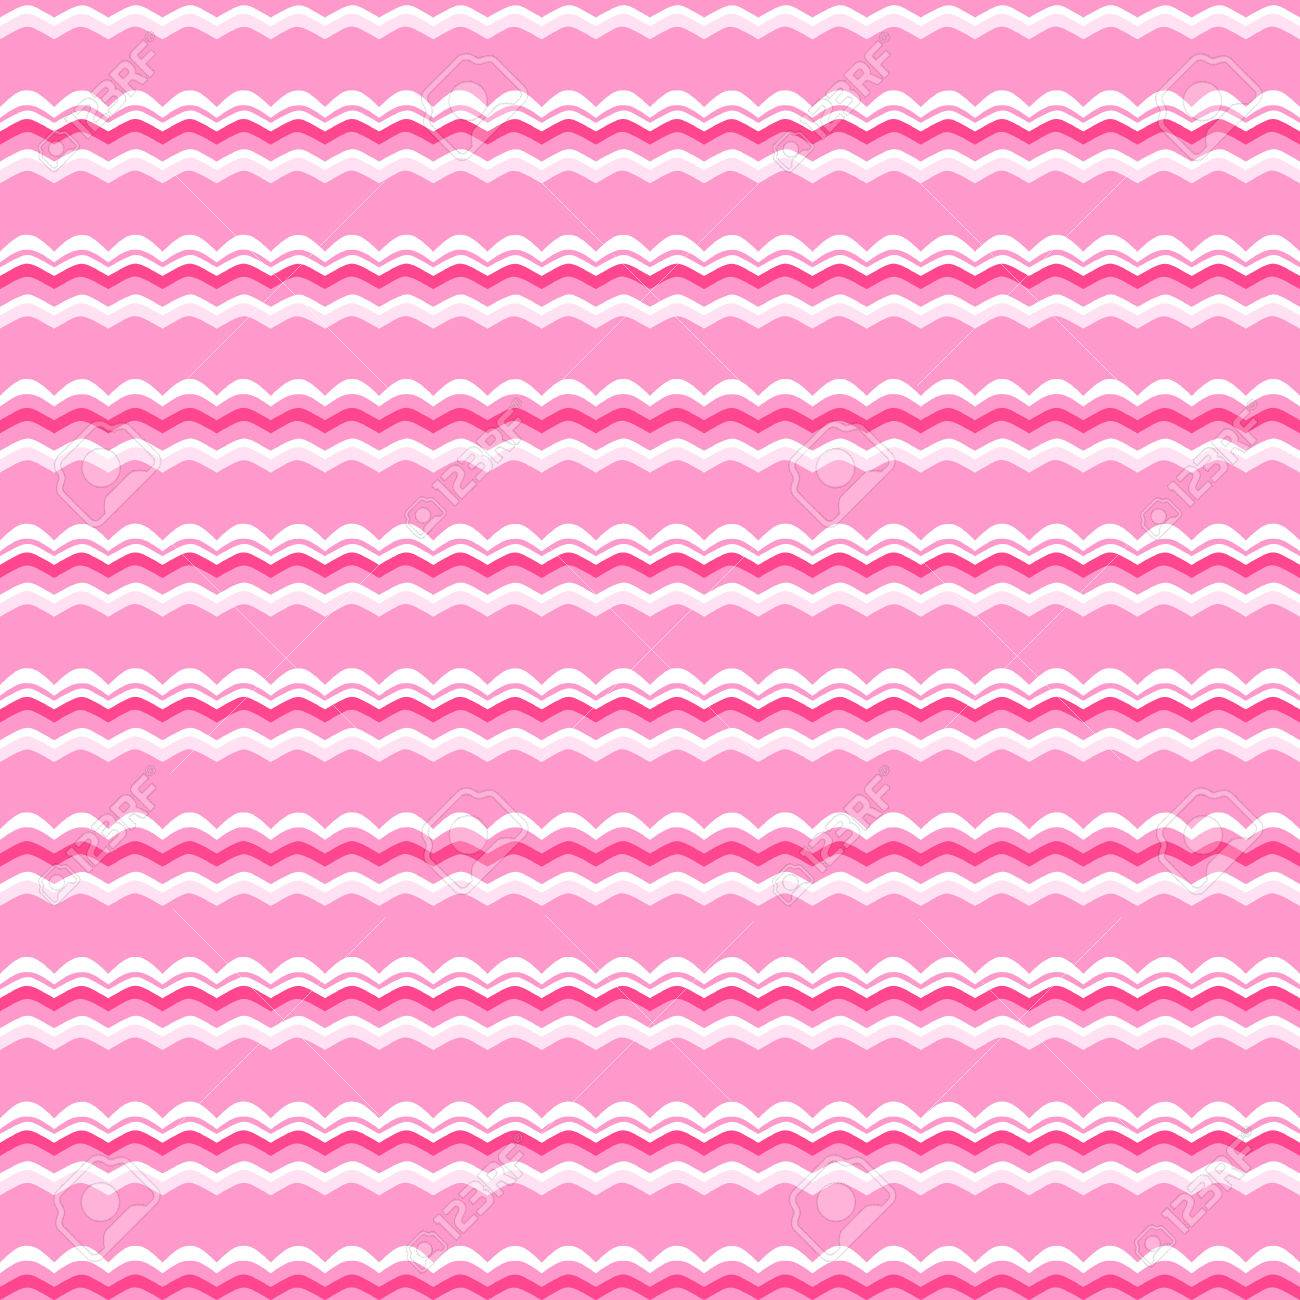 Cute Pink Vector Seamless Pattern Endless Texture For Wallpaper